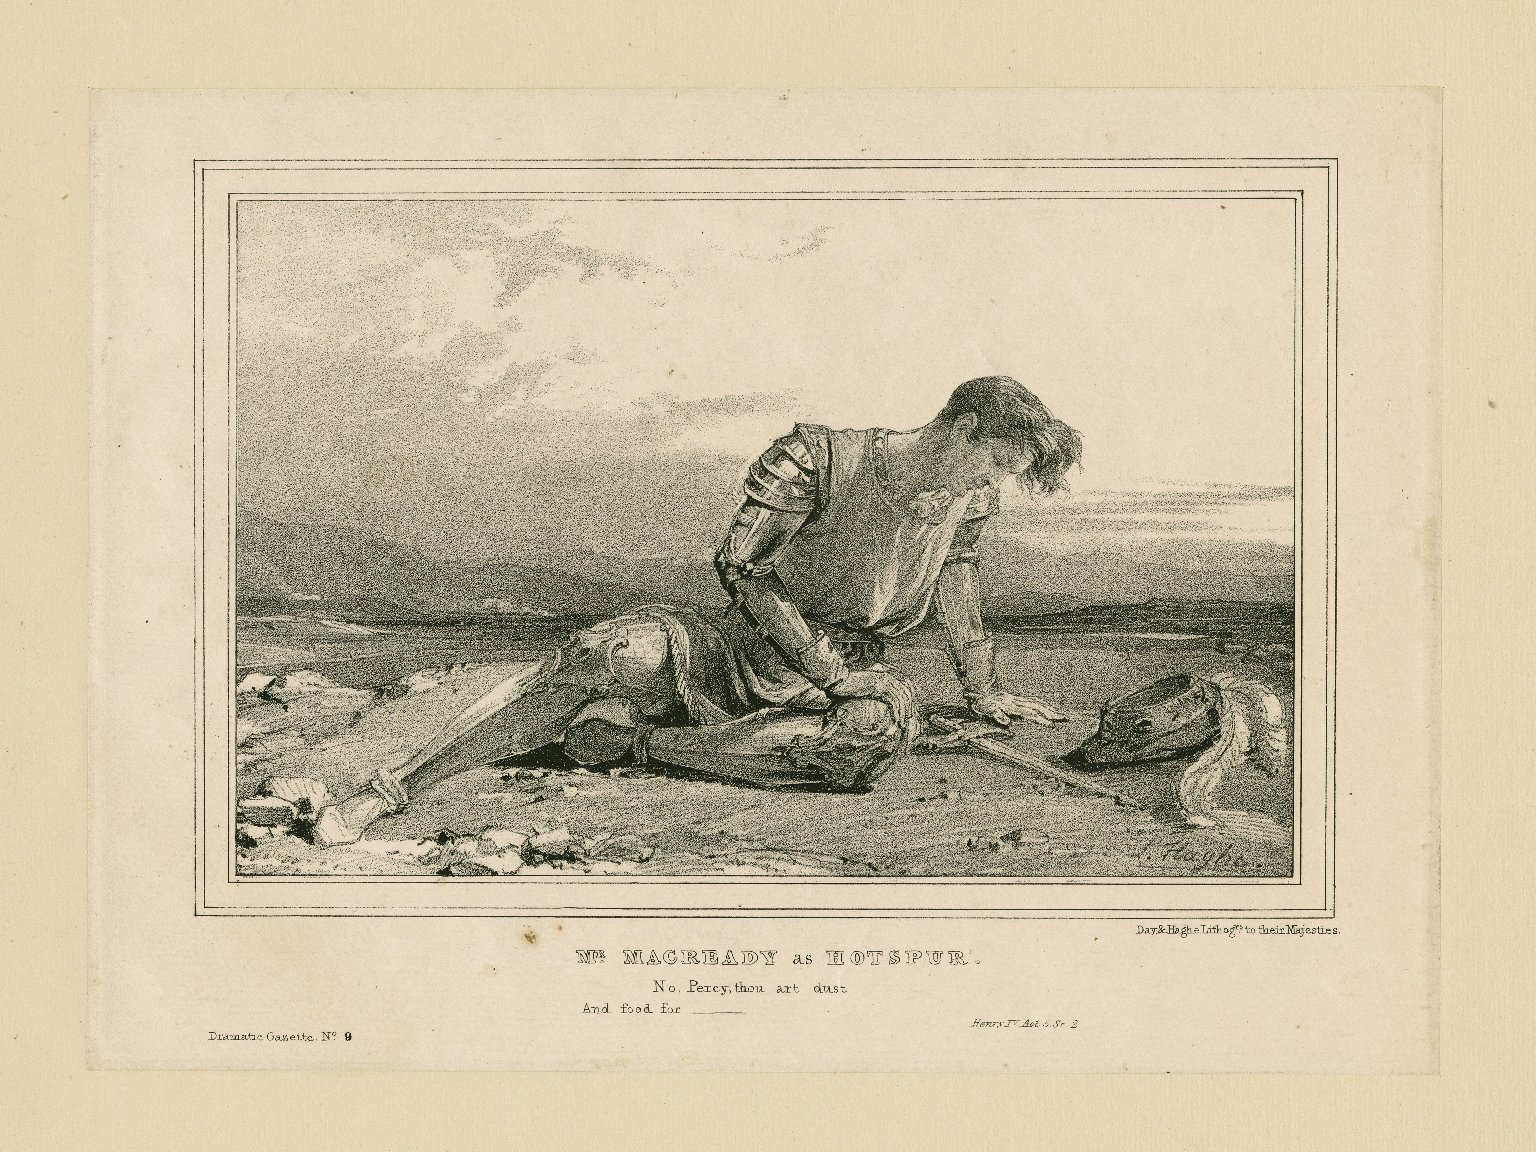 Mr. Macready as Hotspur, Henry IV act 5, sc. 2 [by Shakespeare] [graphic].